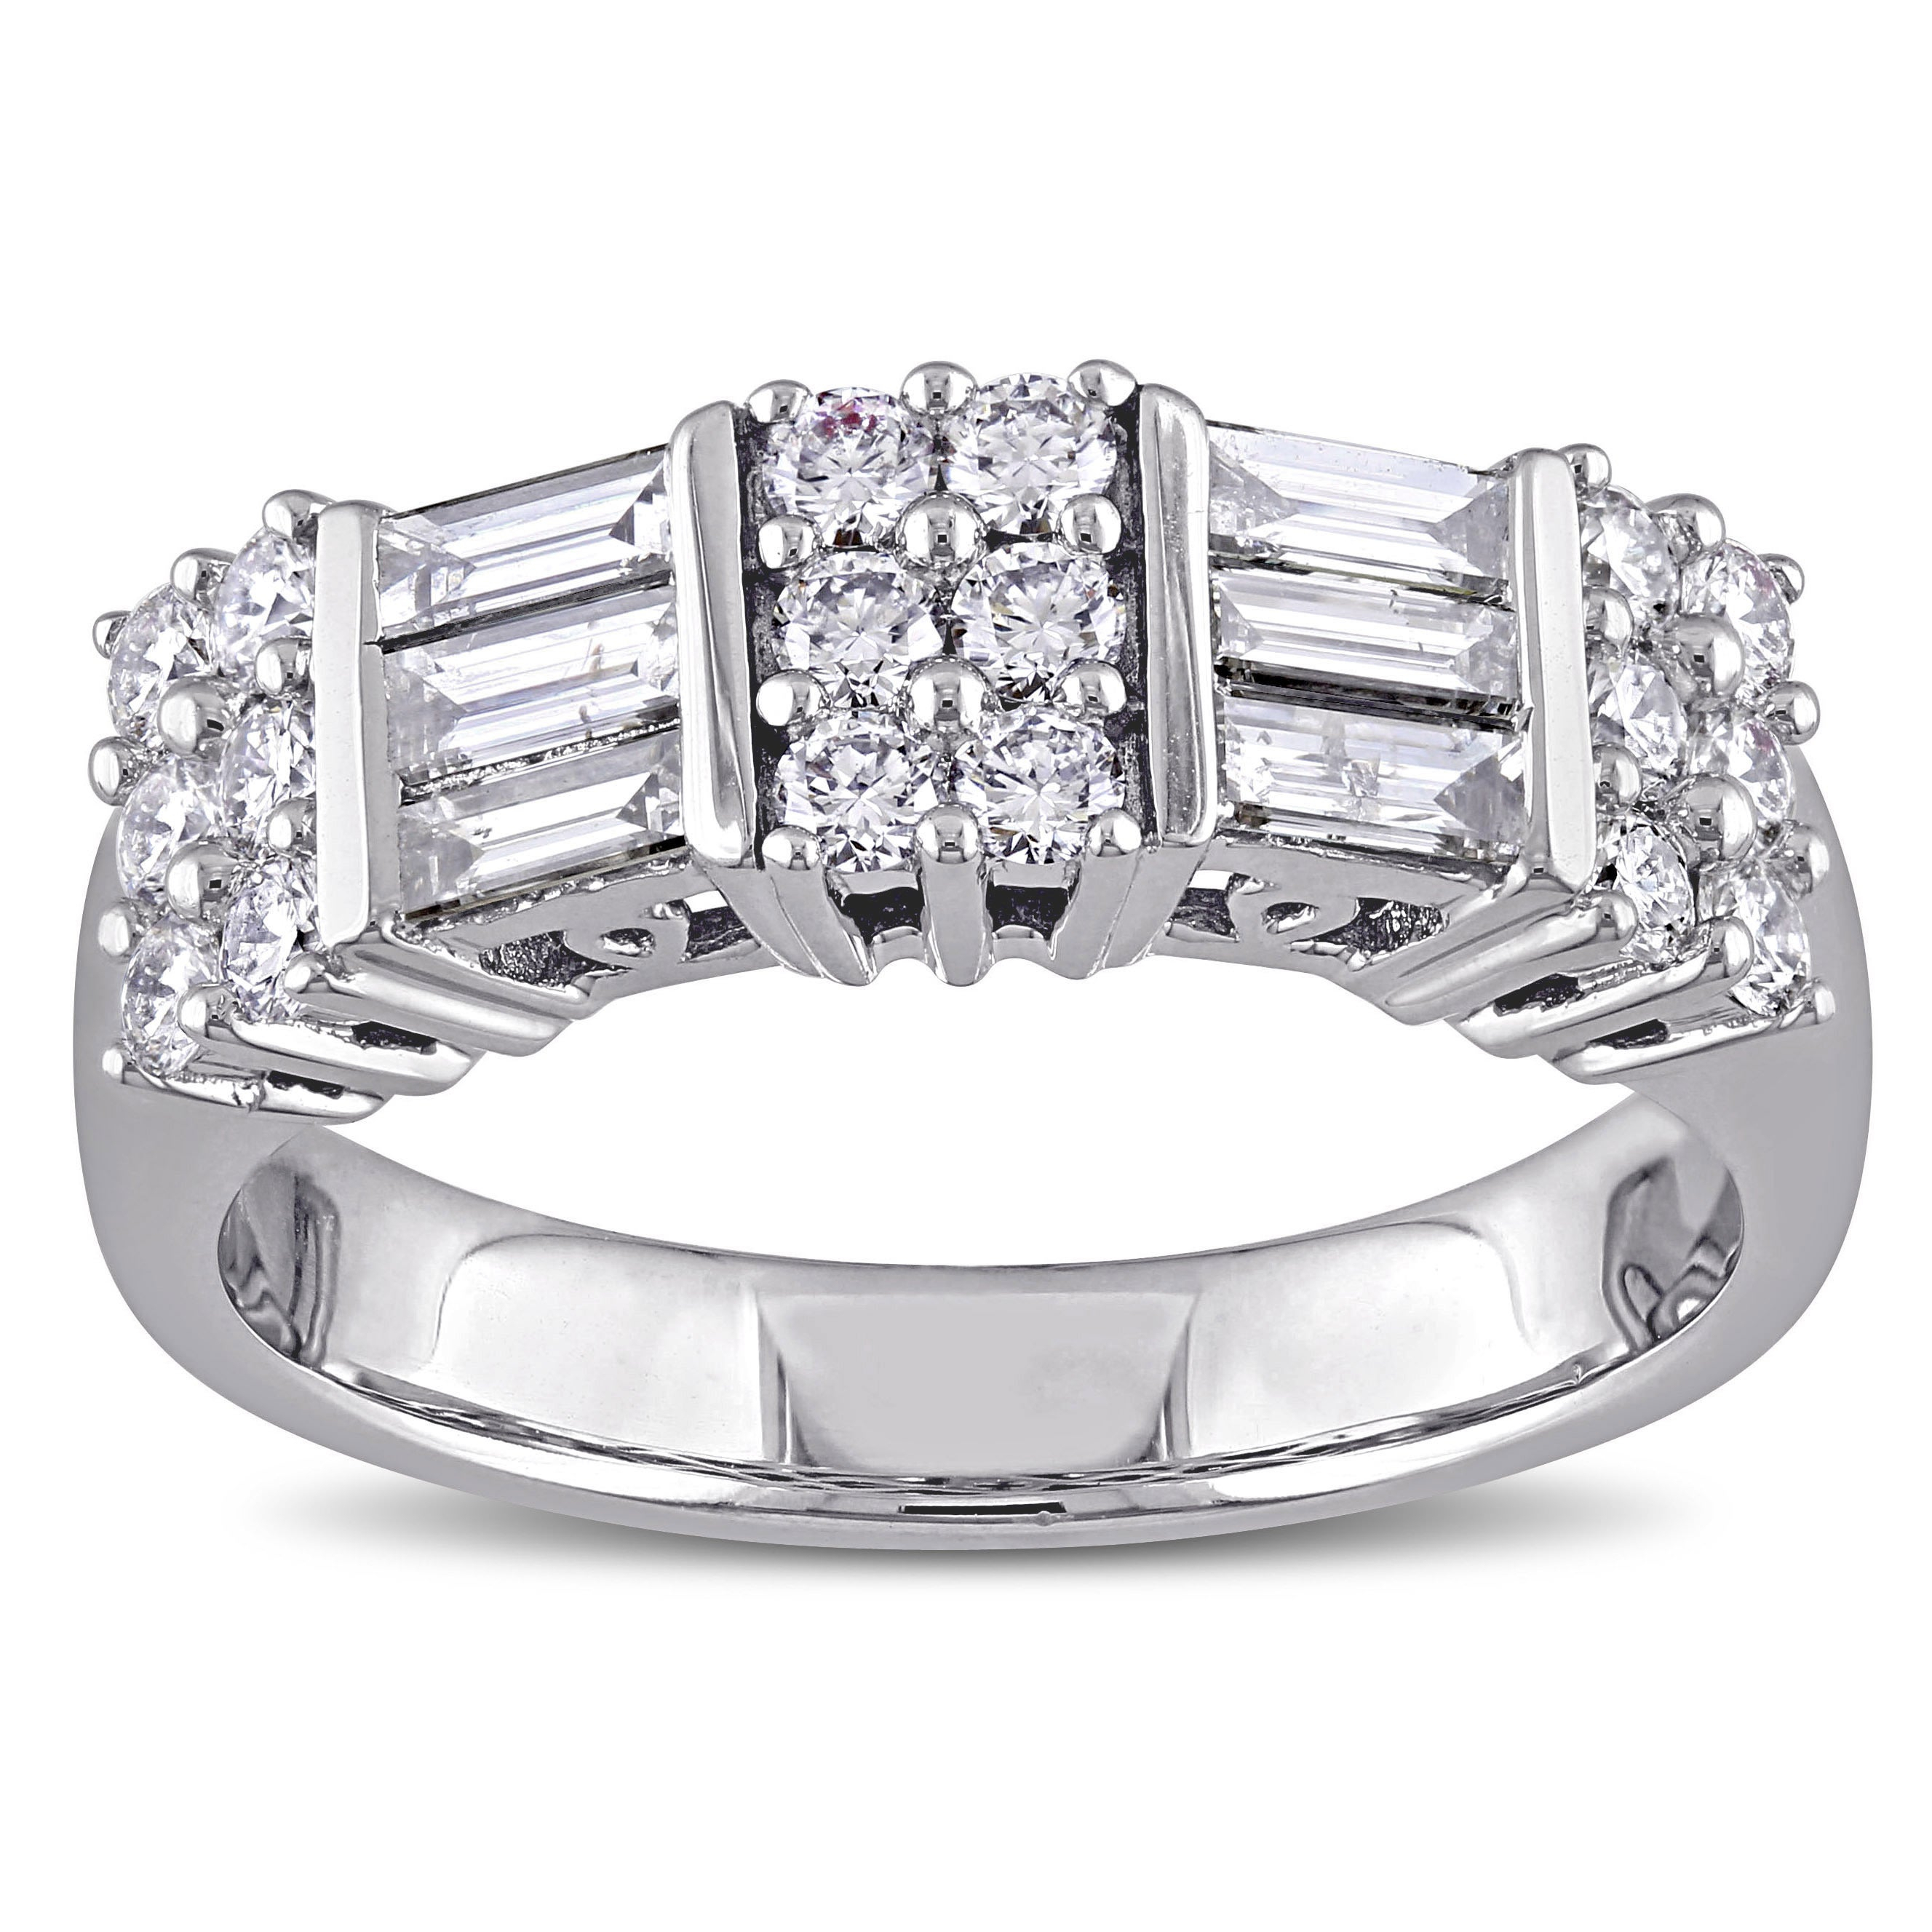 Miadora Signature Collection 14K White Gold 1Ct Tdw Round And Parallel Baguette Cut Diamond Annivers Throughout 2020 Baguette And Round Diamond Alternating Multi Row Anniversary Bands In White Gold (Gallery 25 of 25)